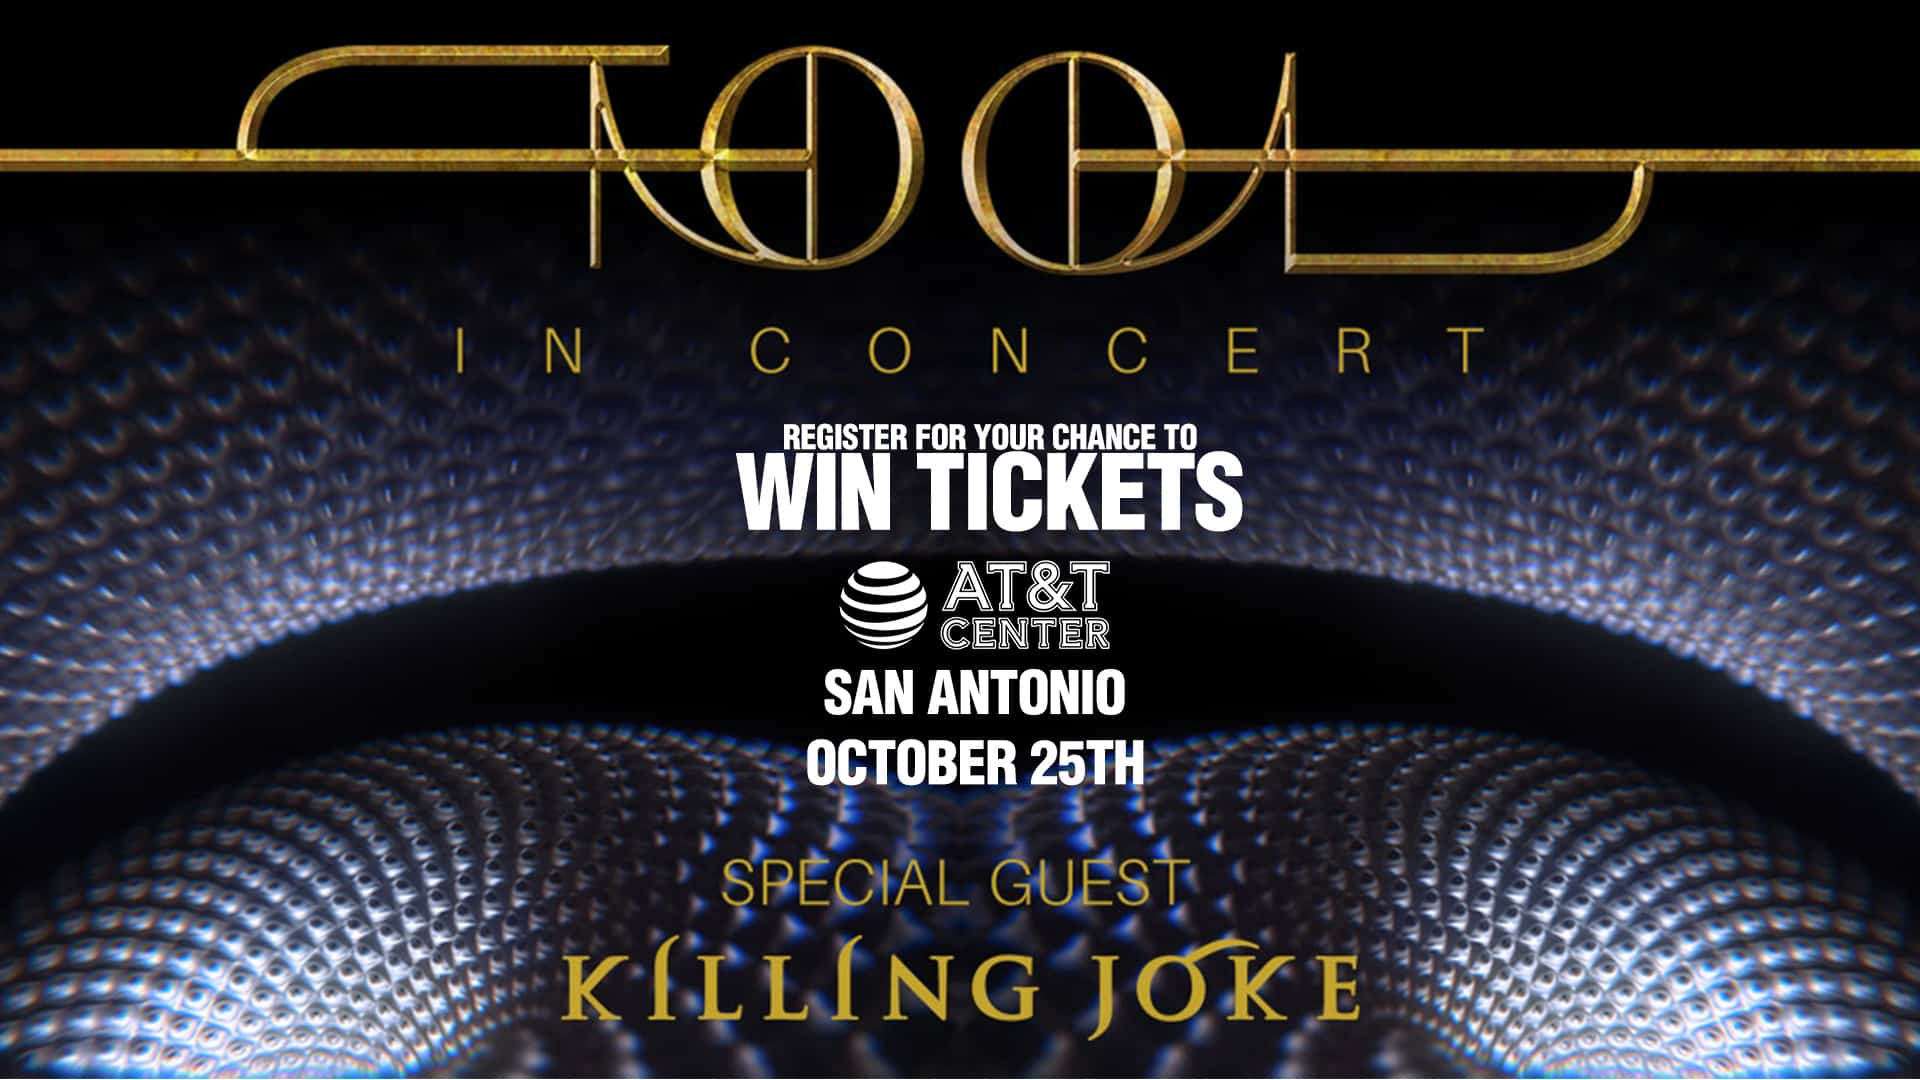 Register for your chance to win tickets to see Tool!